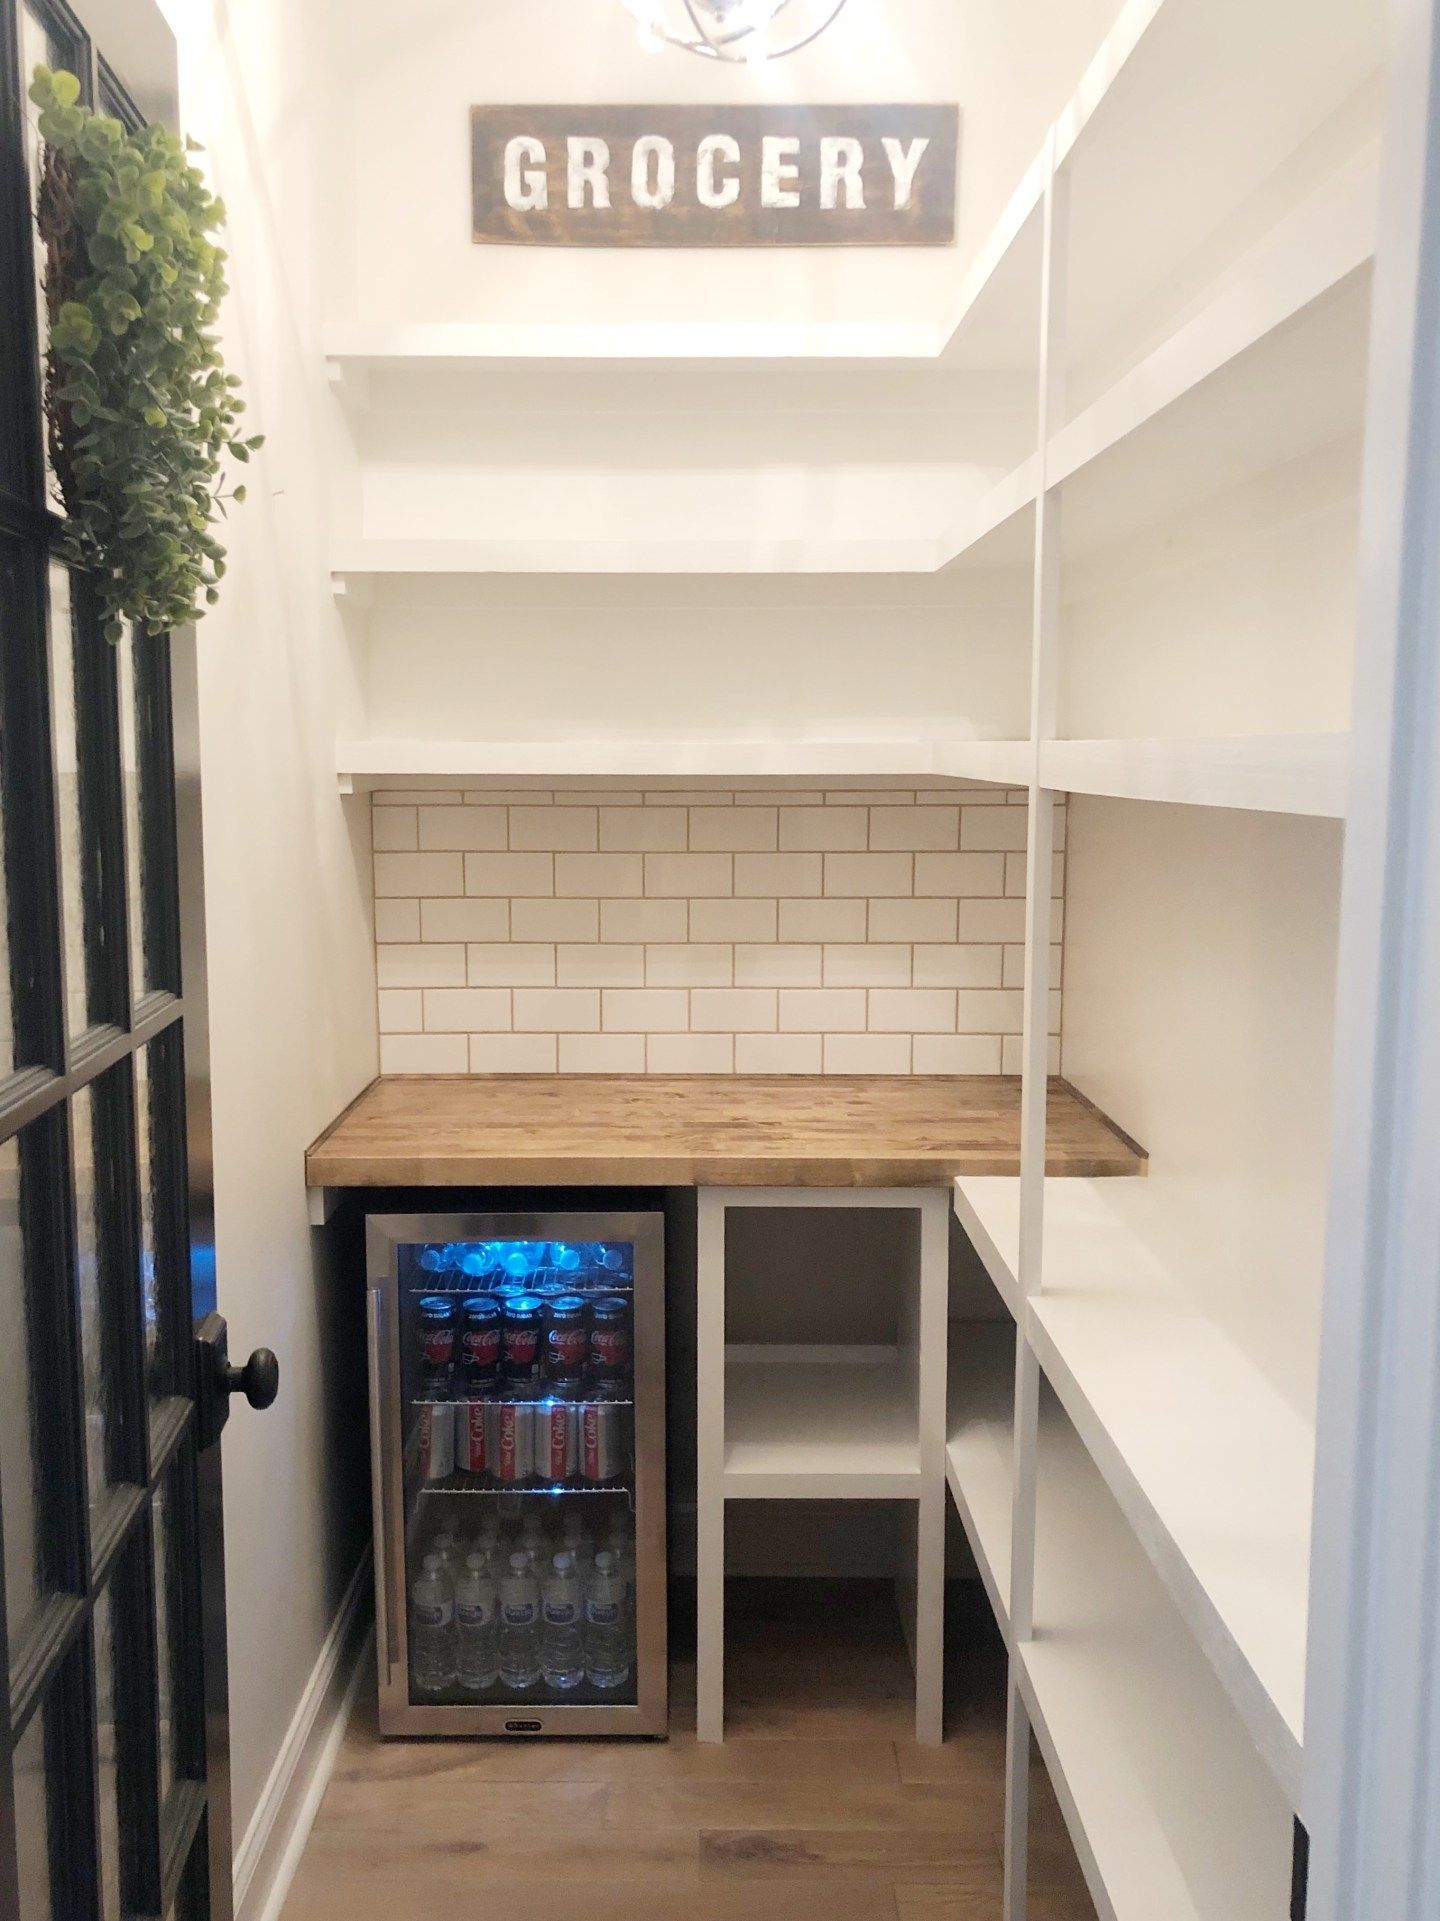 A walk in pantry makeover from builder grade to organized functionality. #houseinterior A walk in pantry makeover. Goodbye wire shelves, hello glass f...